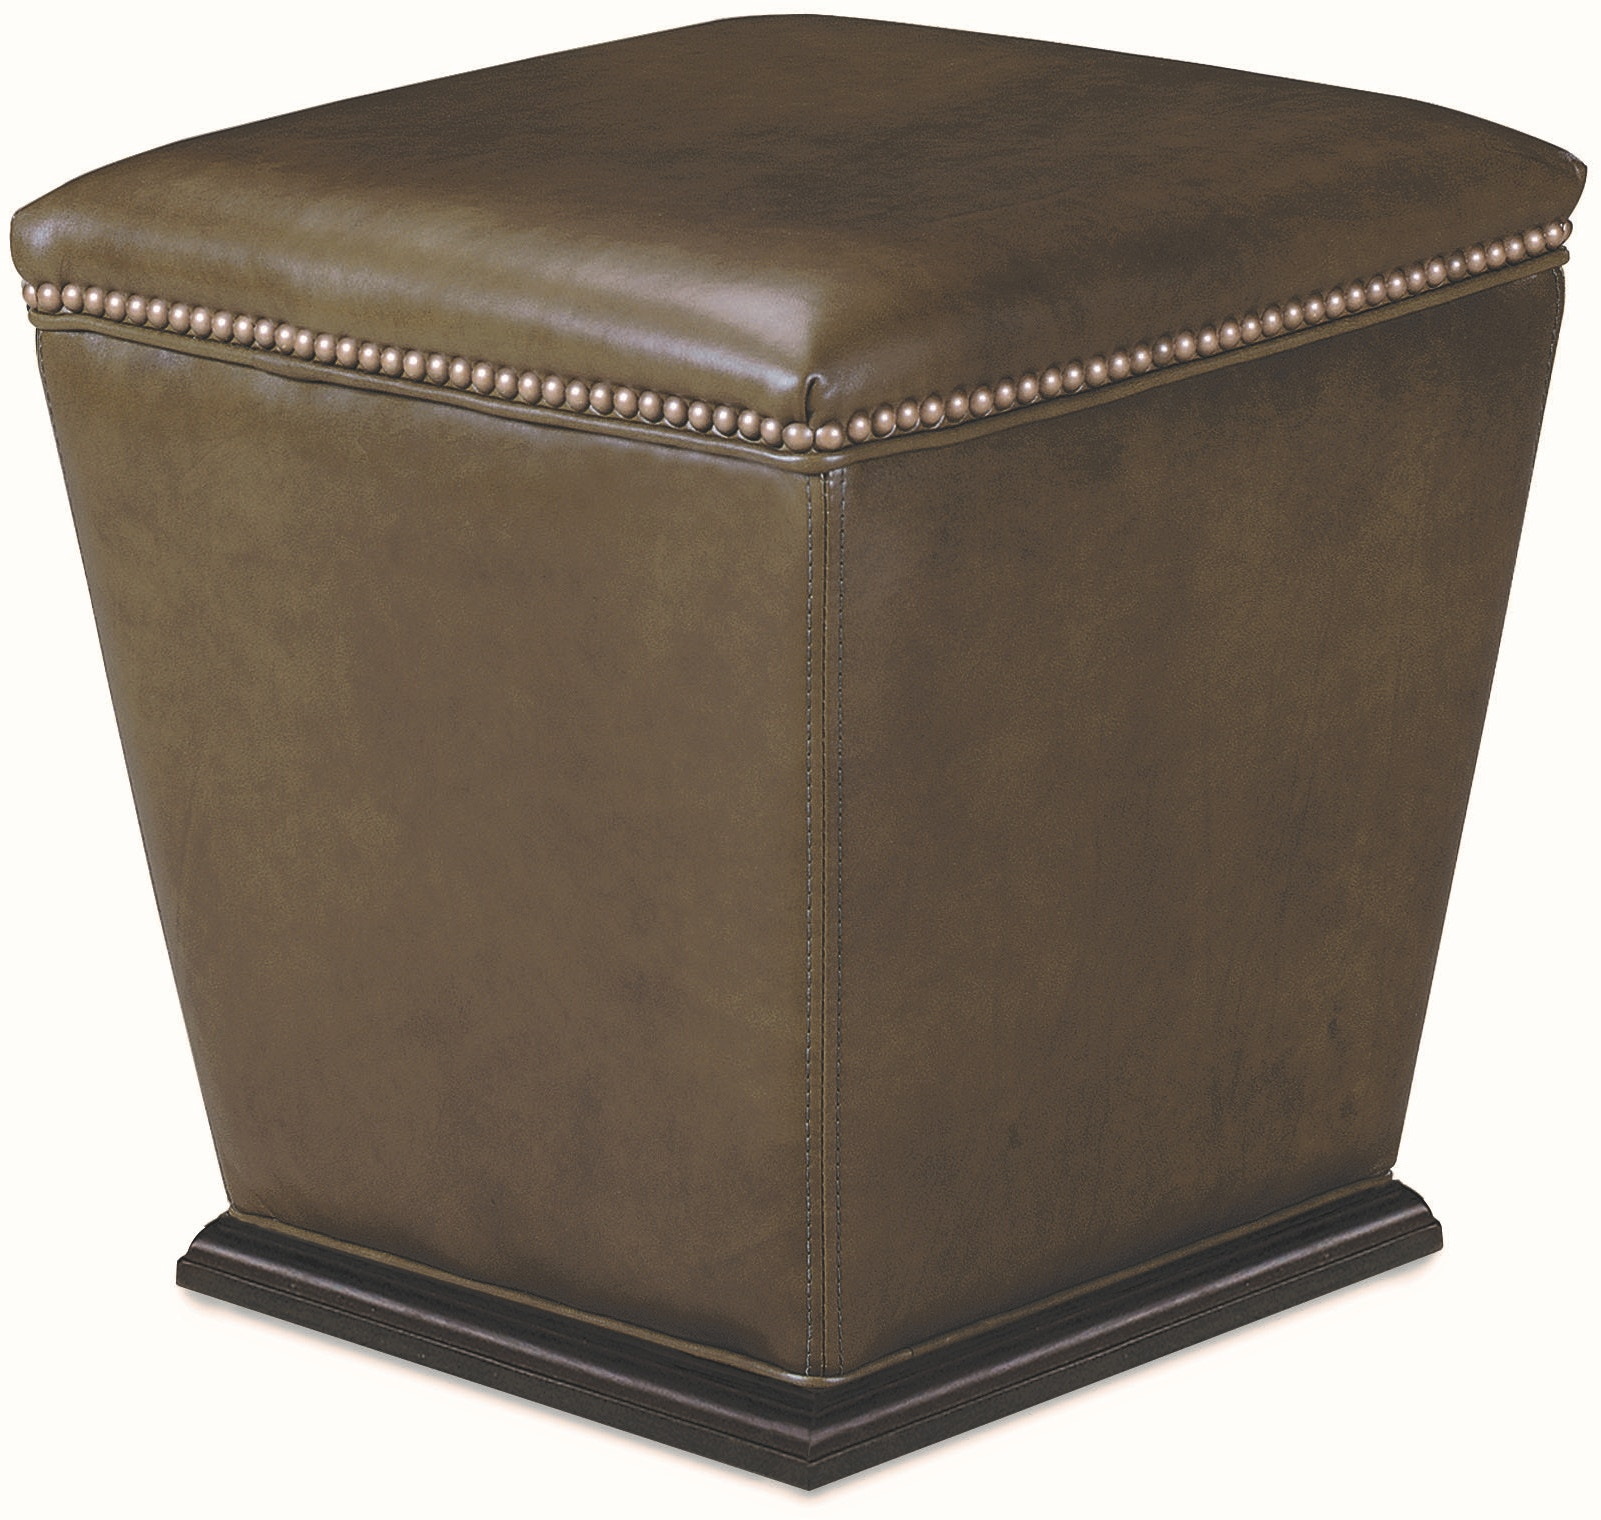 Lee Industries Living Room Leather Bongo Ottoman L9308 00